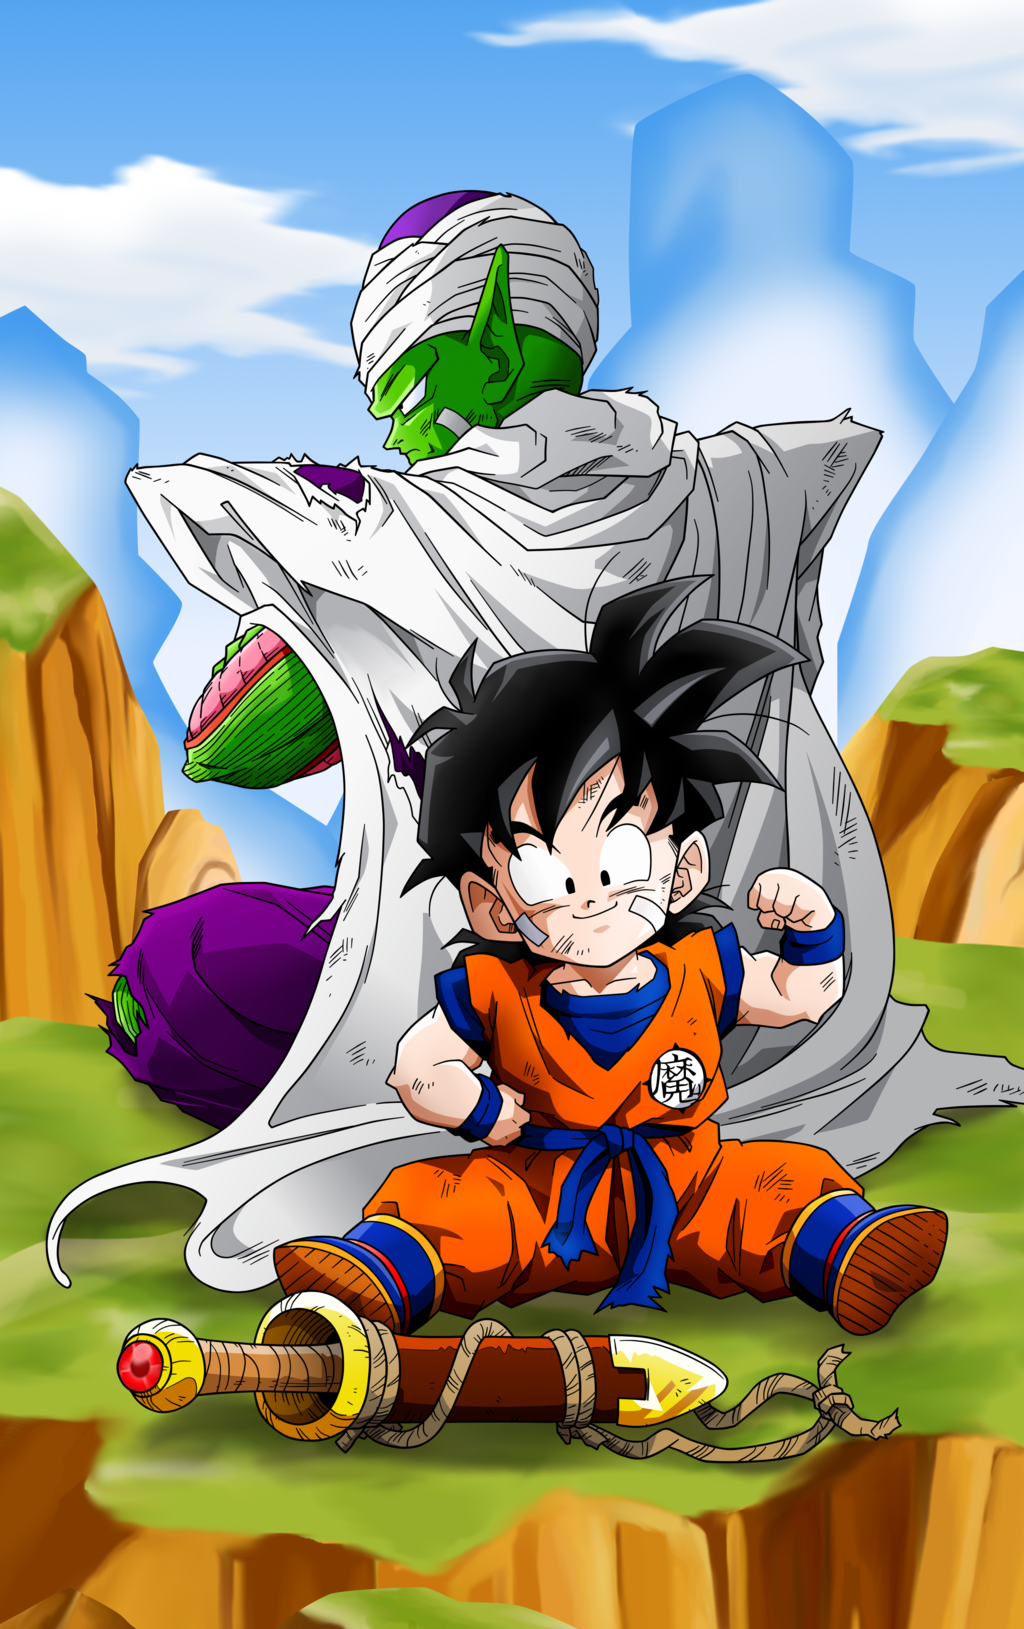 Gohan And Piccolo Training By Miguele77 Deviantart Com On